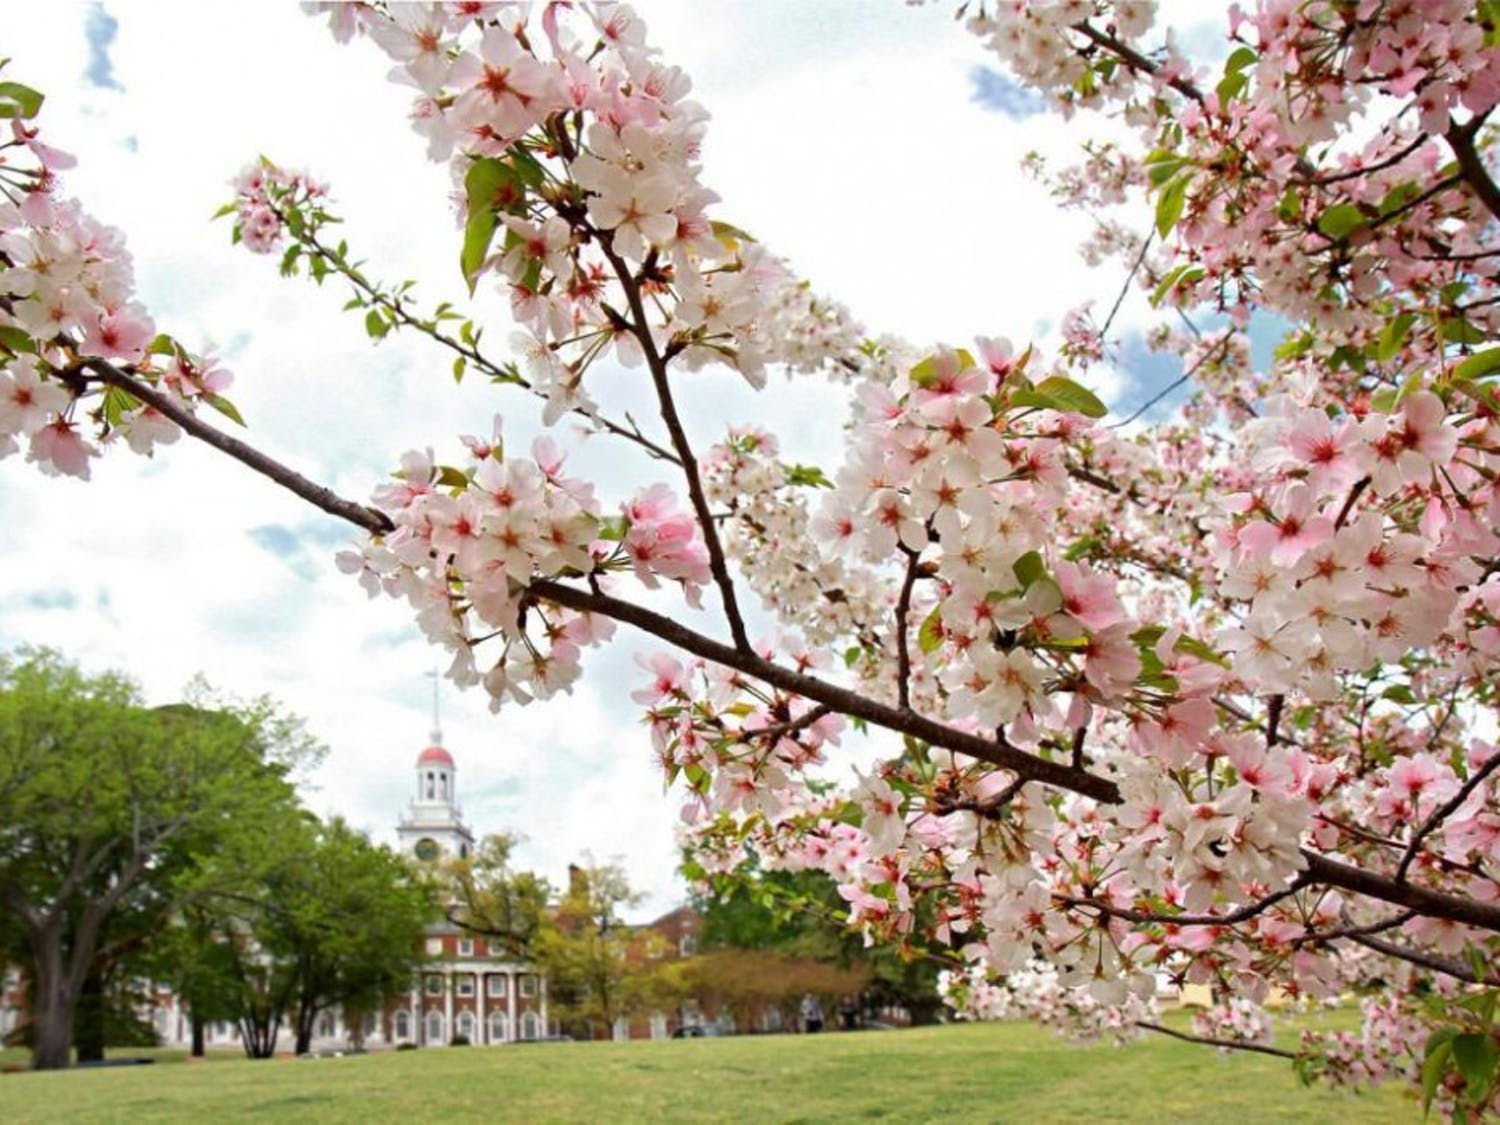 law-school-with-cherry-blossoms-X2